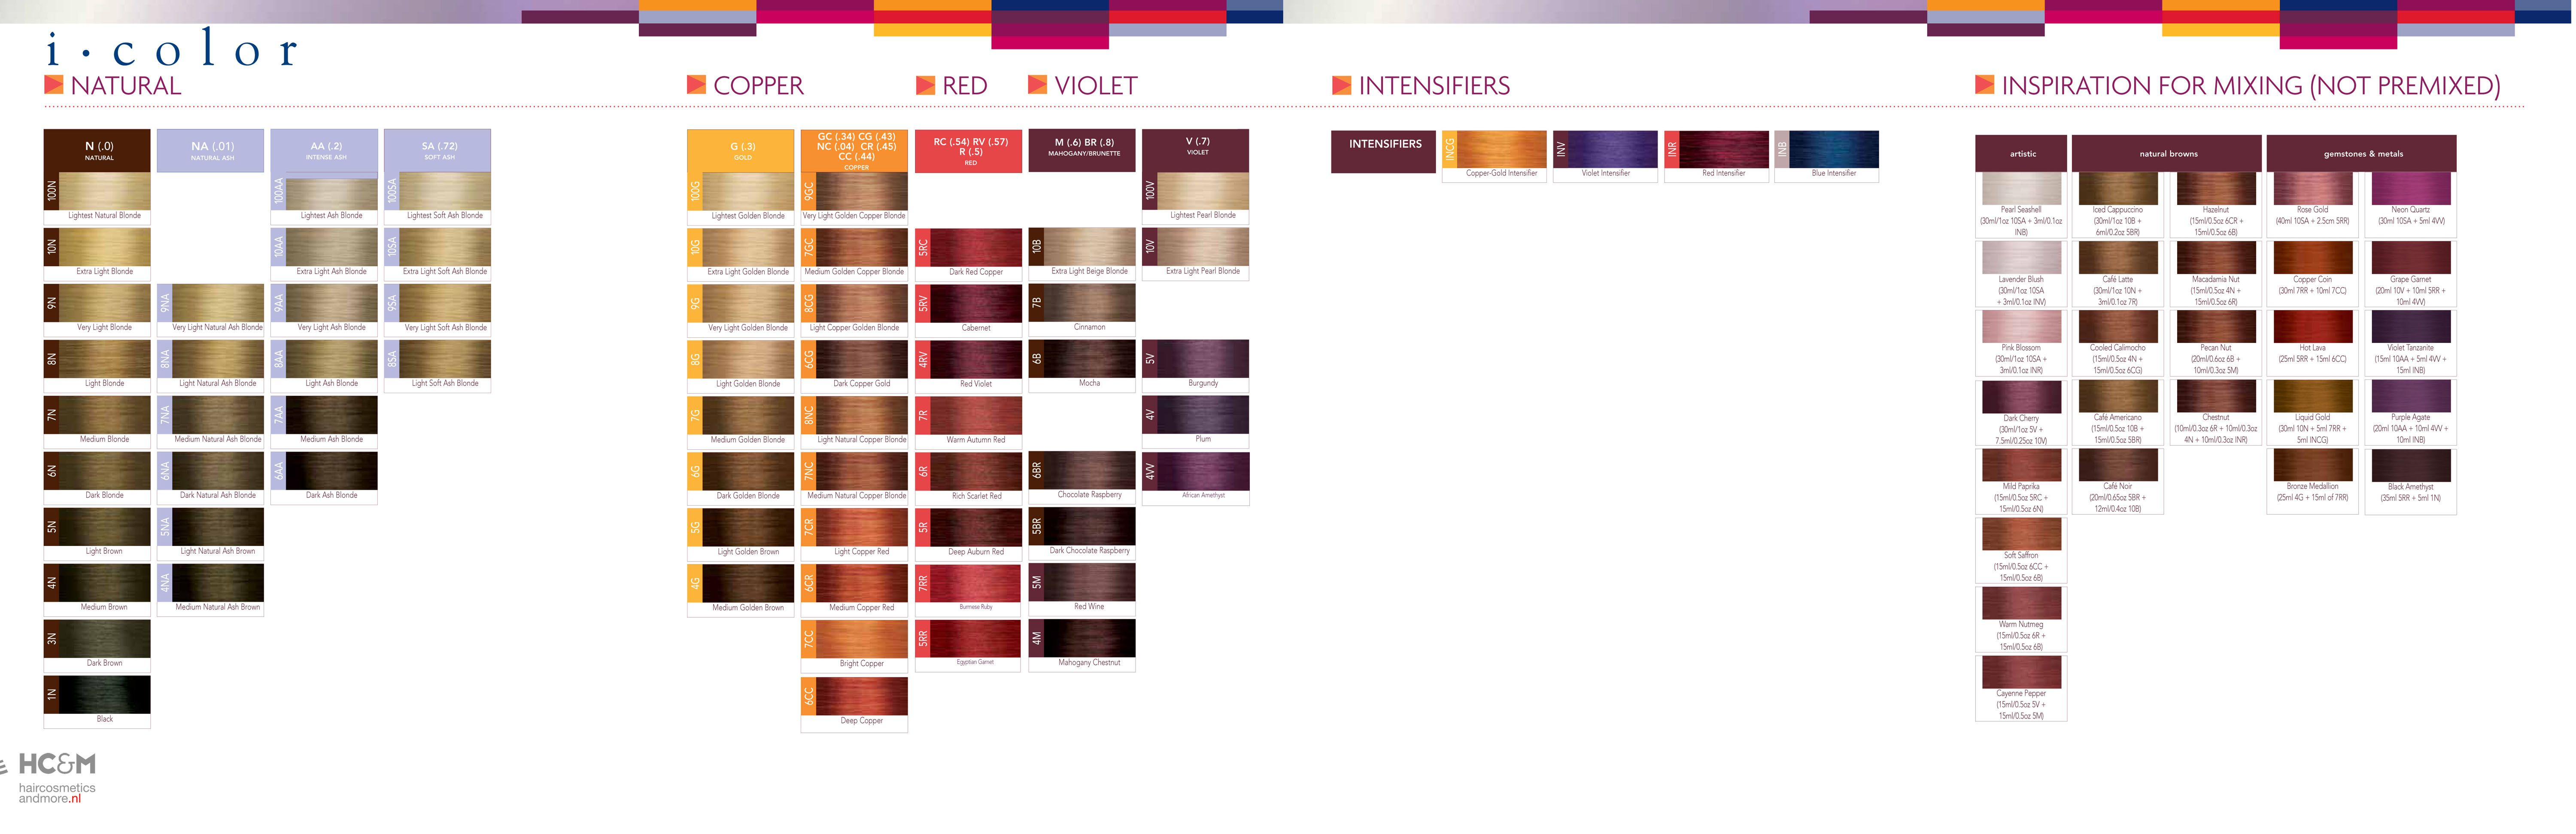 Iso i color swatch chart guy tang pinterest swatch hair iso i color swatch chart nvjuhfo Image collections